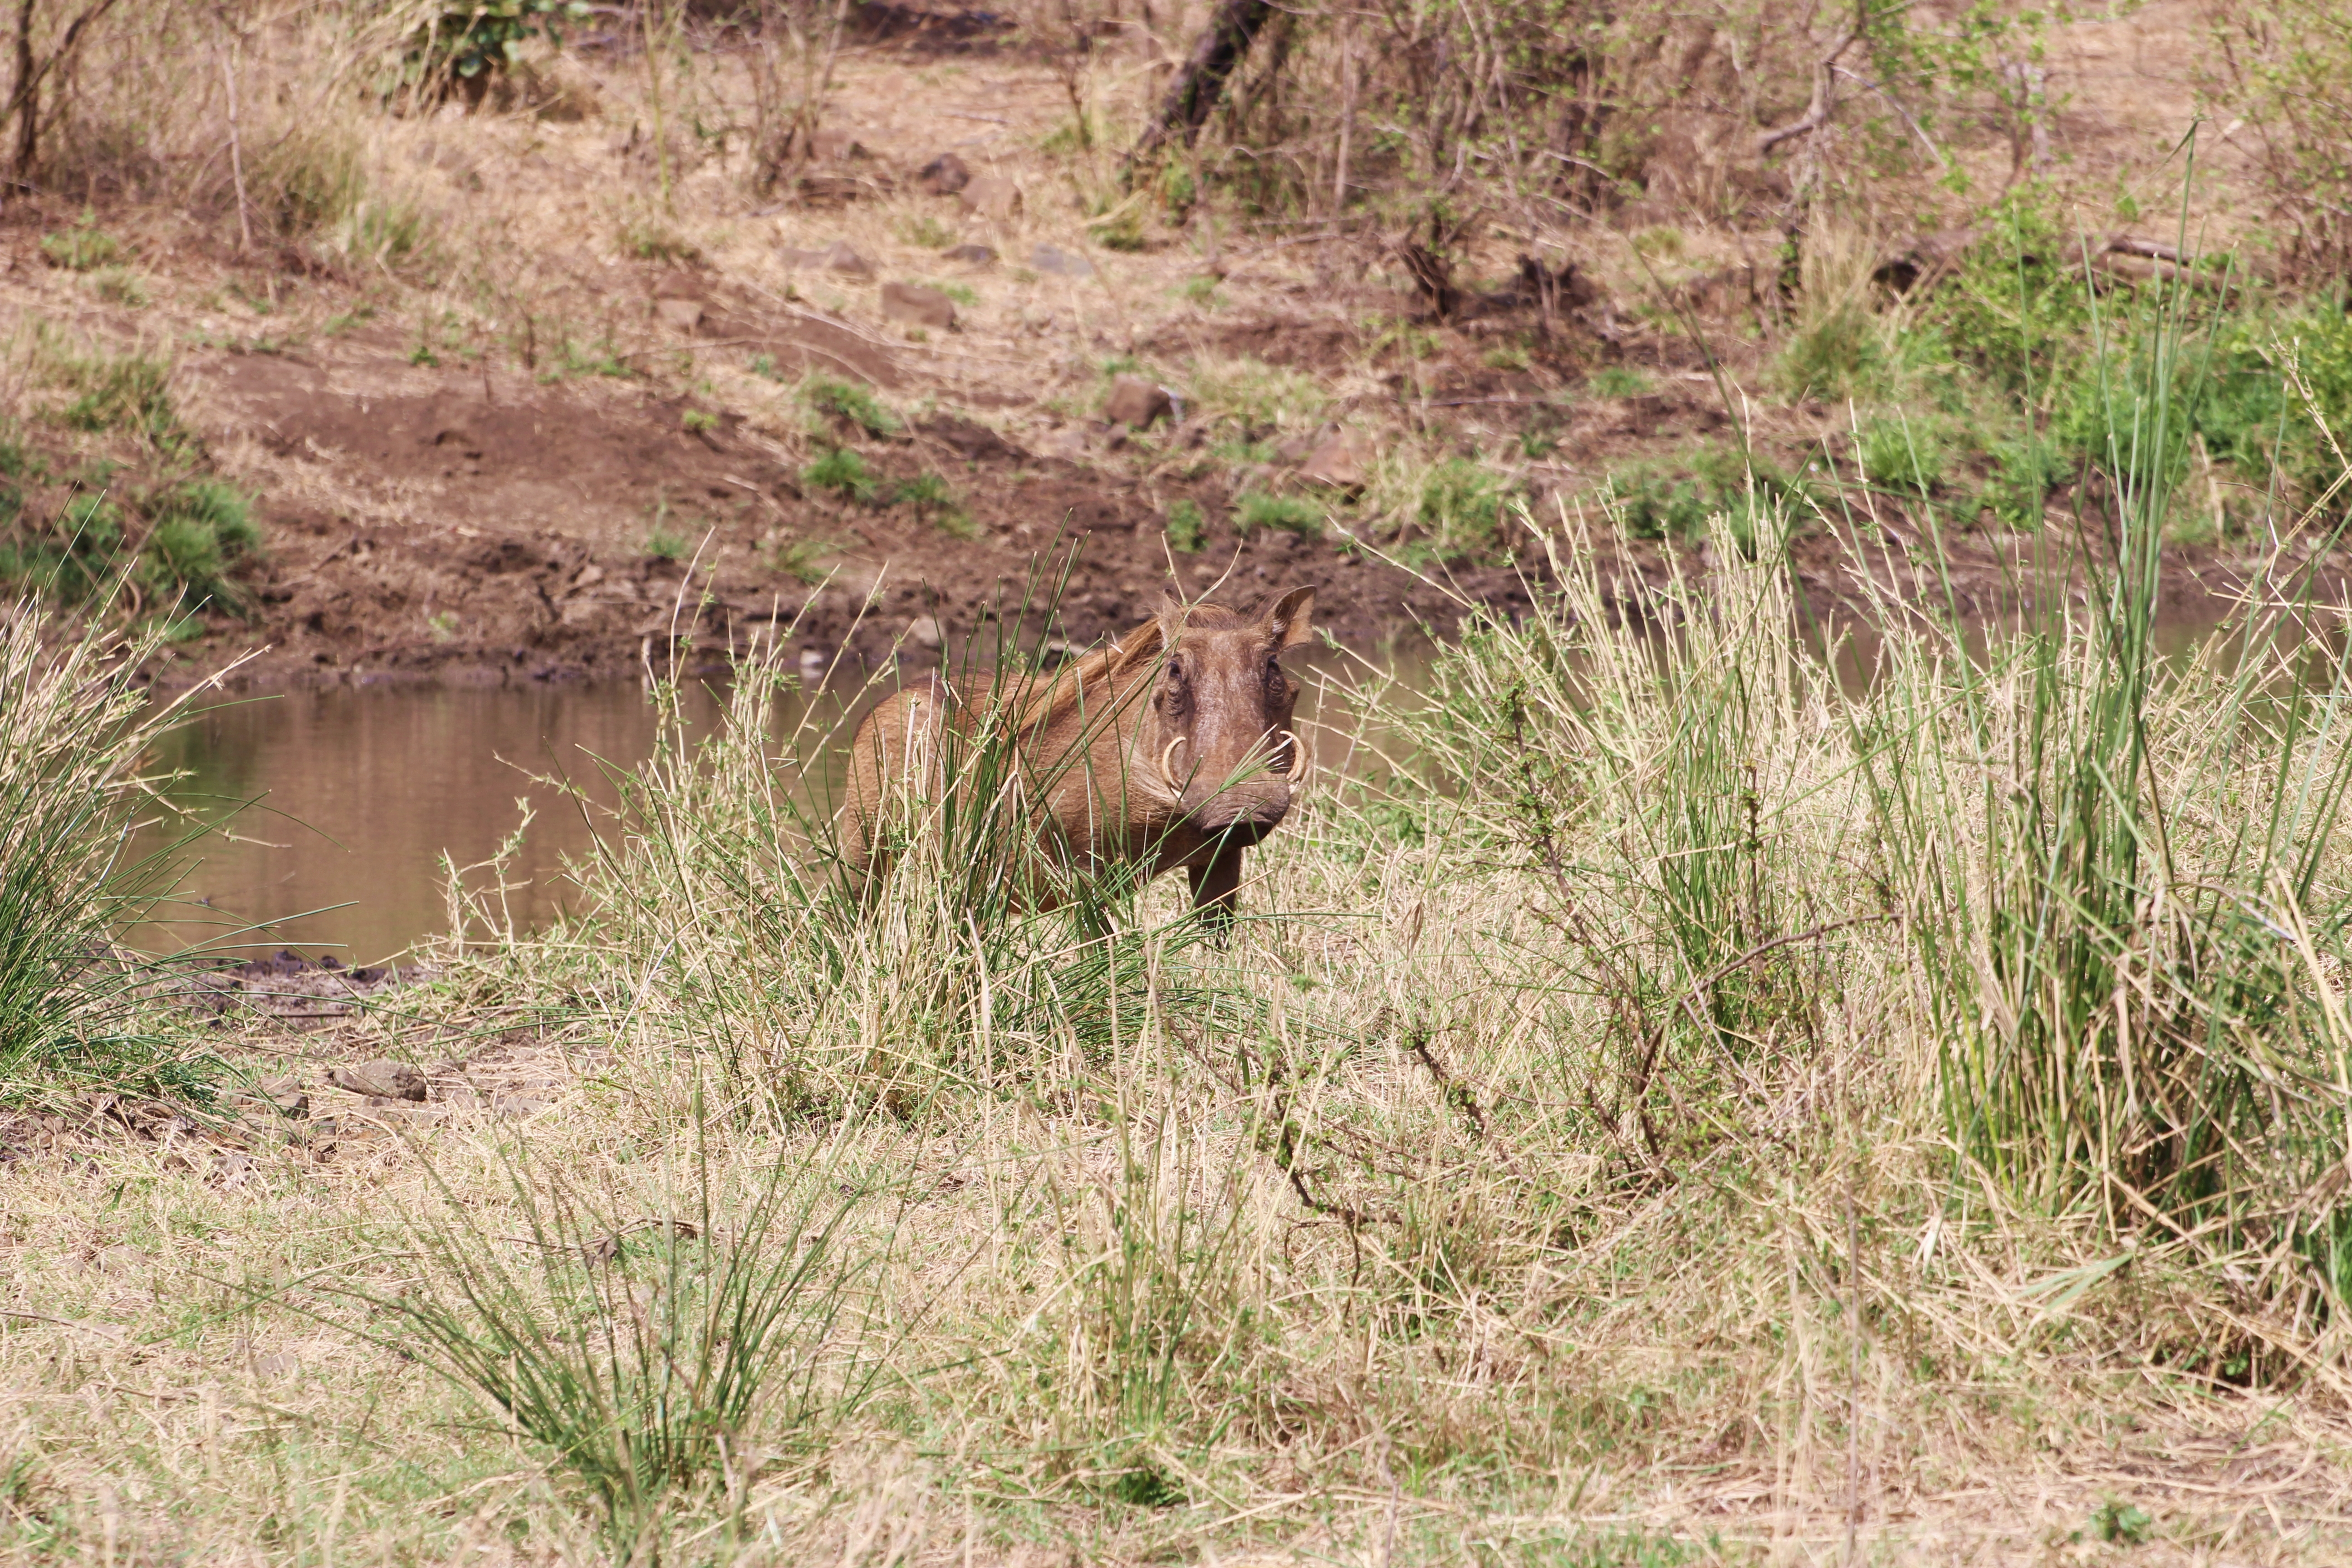 Kruger warthog by watering hole